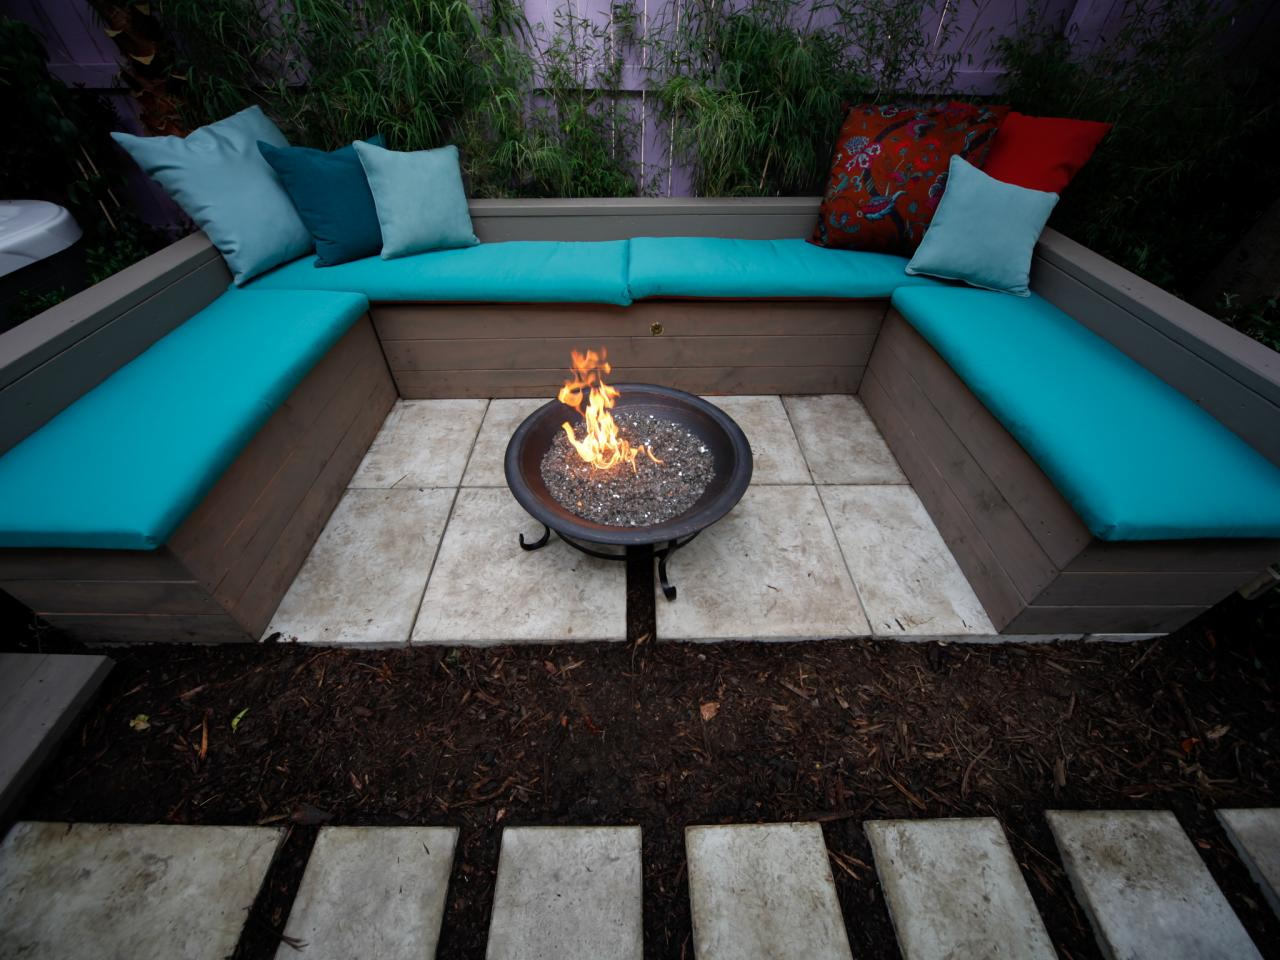 Fireplace Tables Outdoor Diy Outdoor Fire Pit Table Fireplace Design Ideas